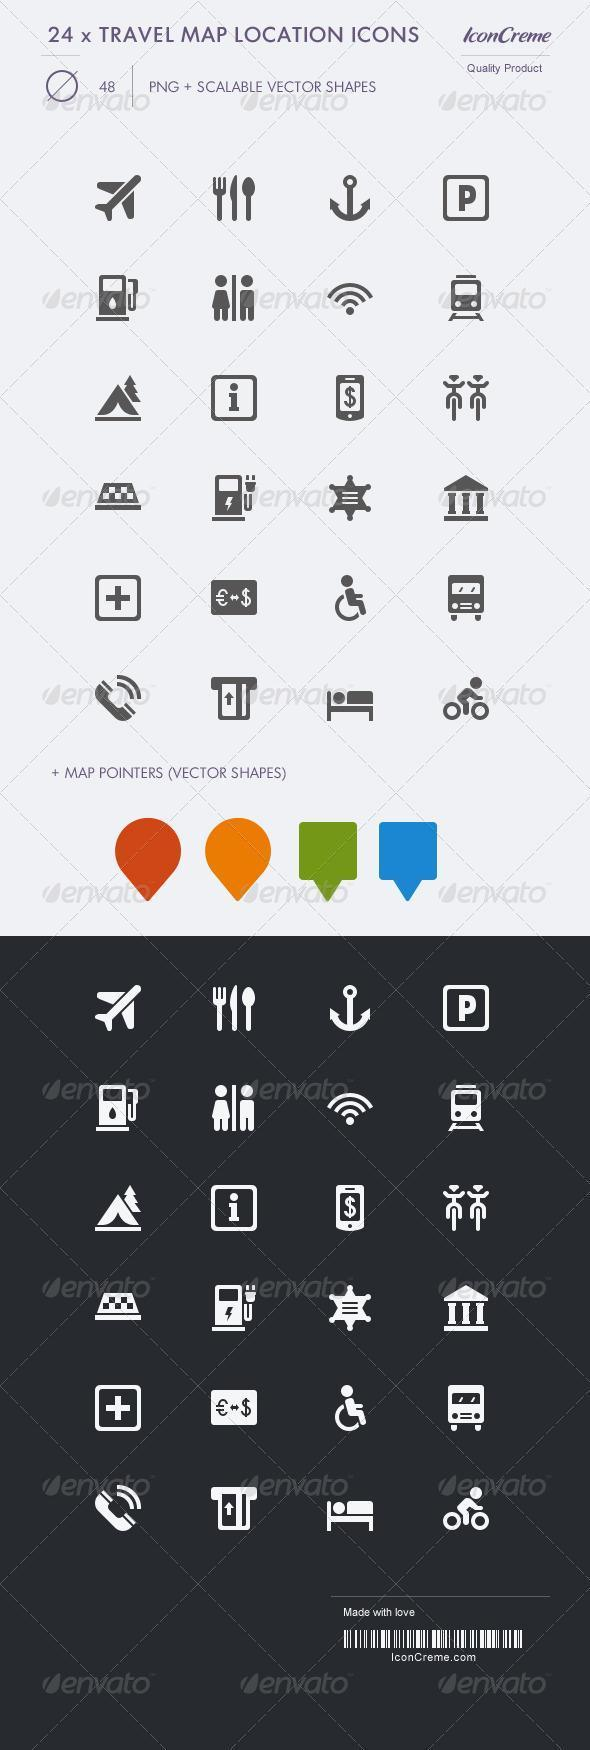 Travel Map Pin Icons Premium